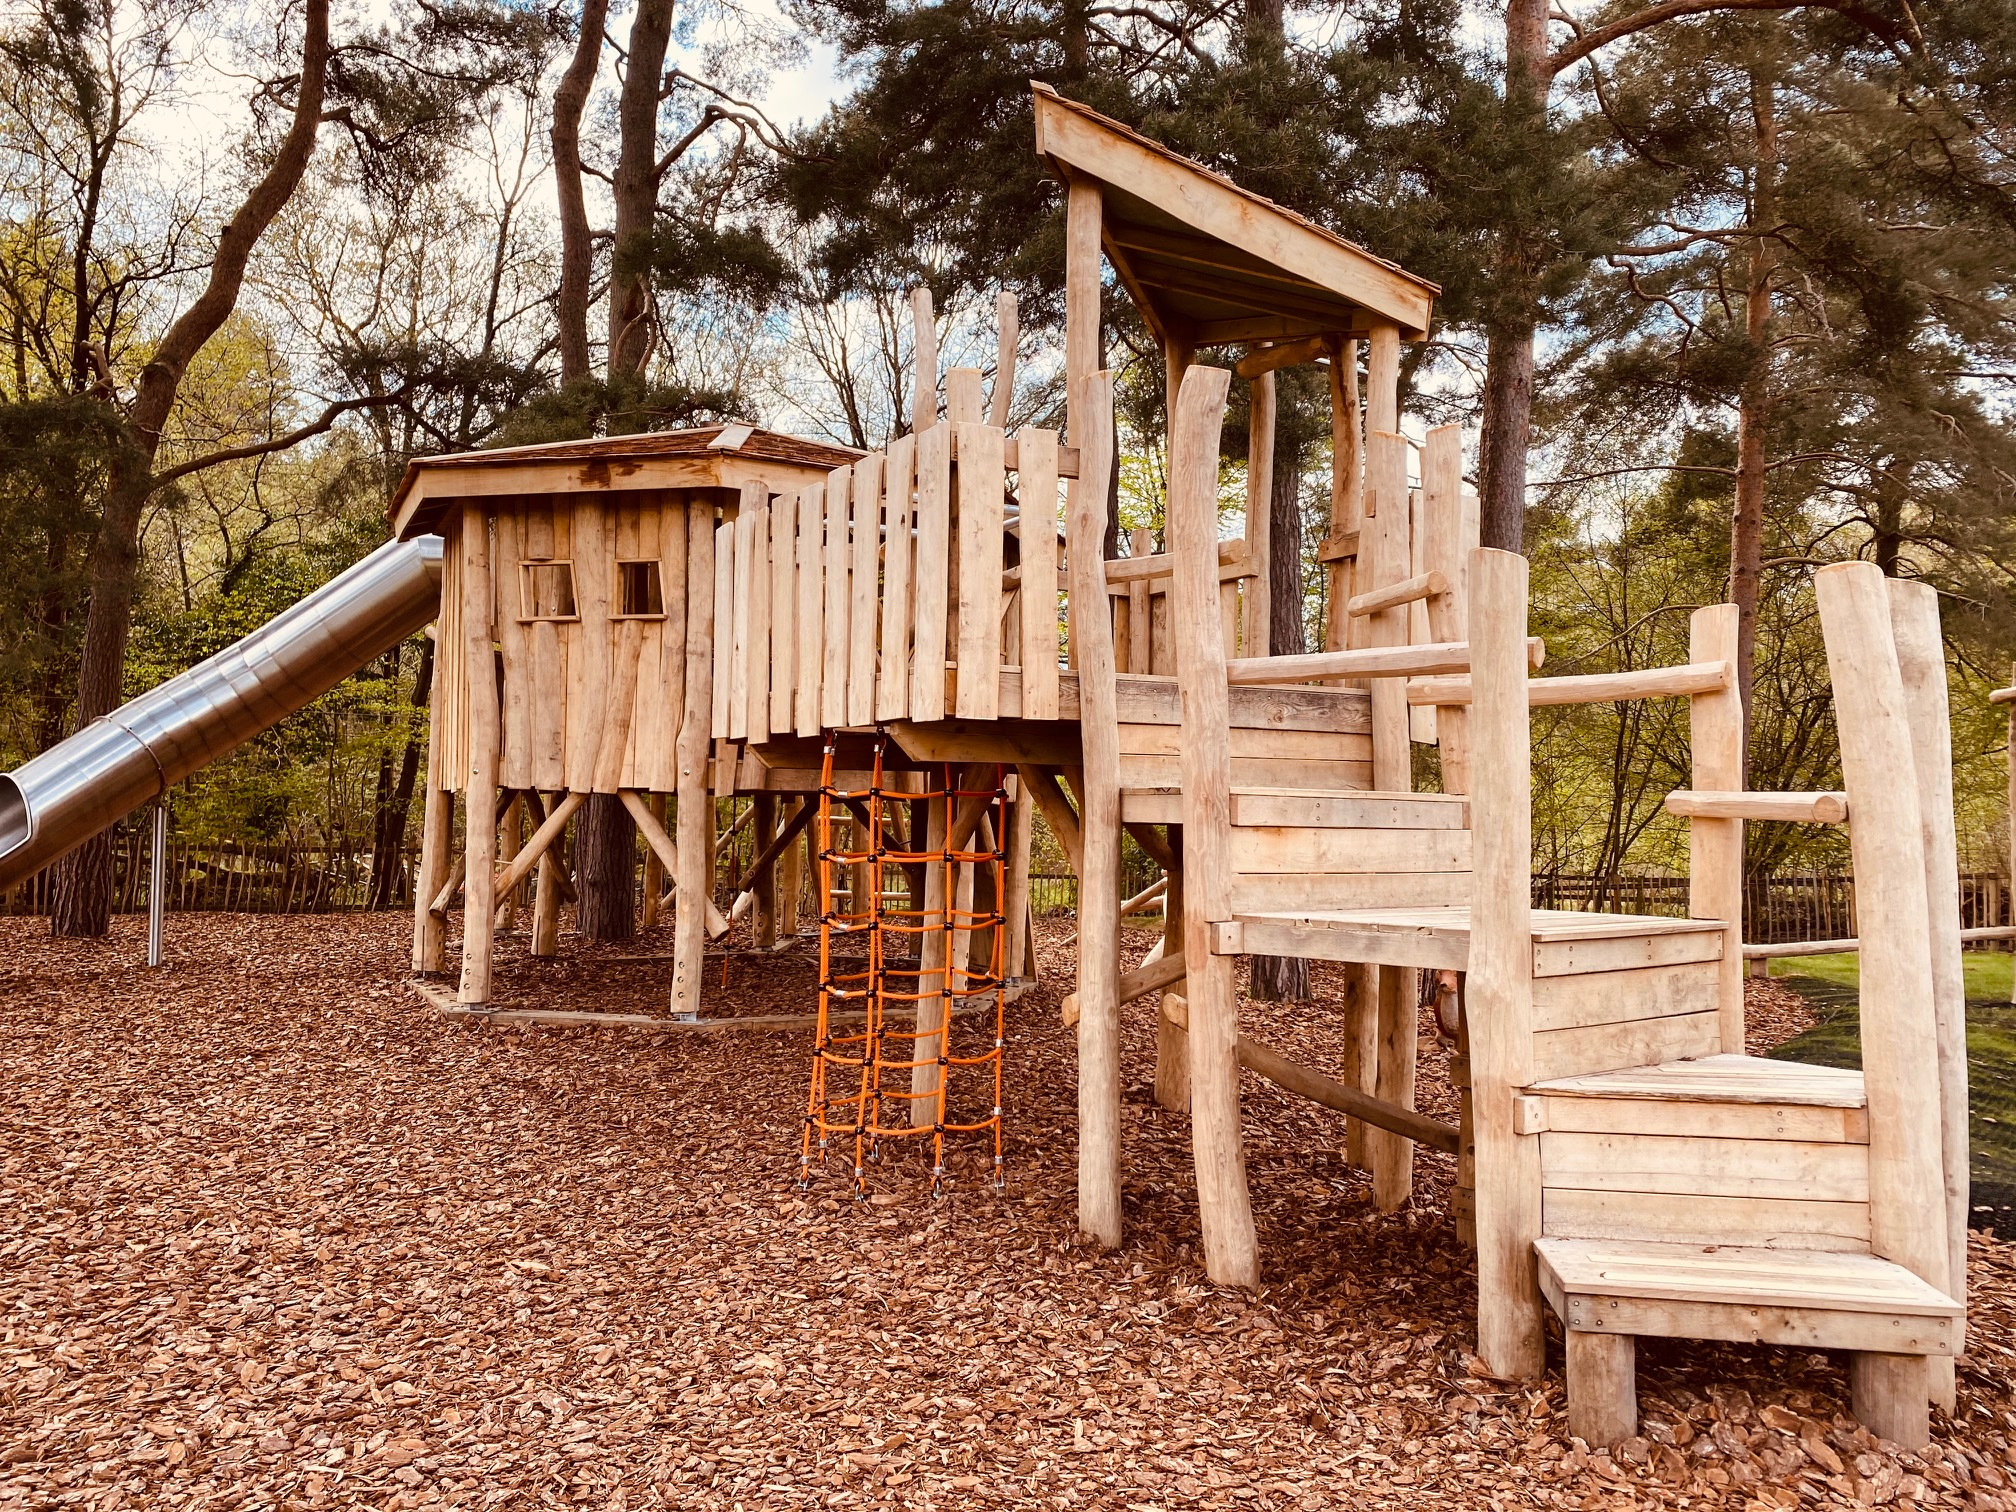 California Country Park, Wokingham park, days out Berkshire, Family Day out berkshire